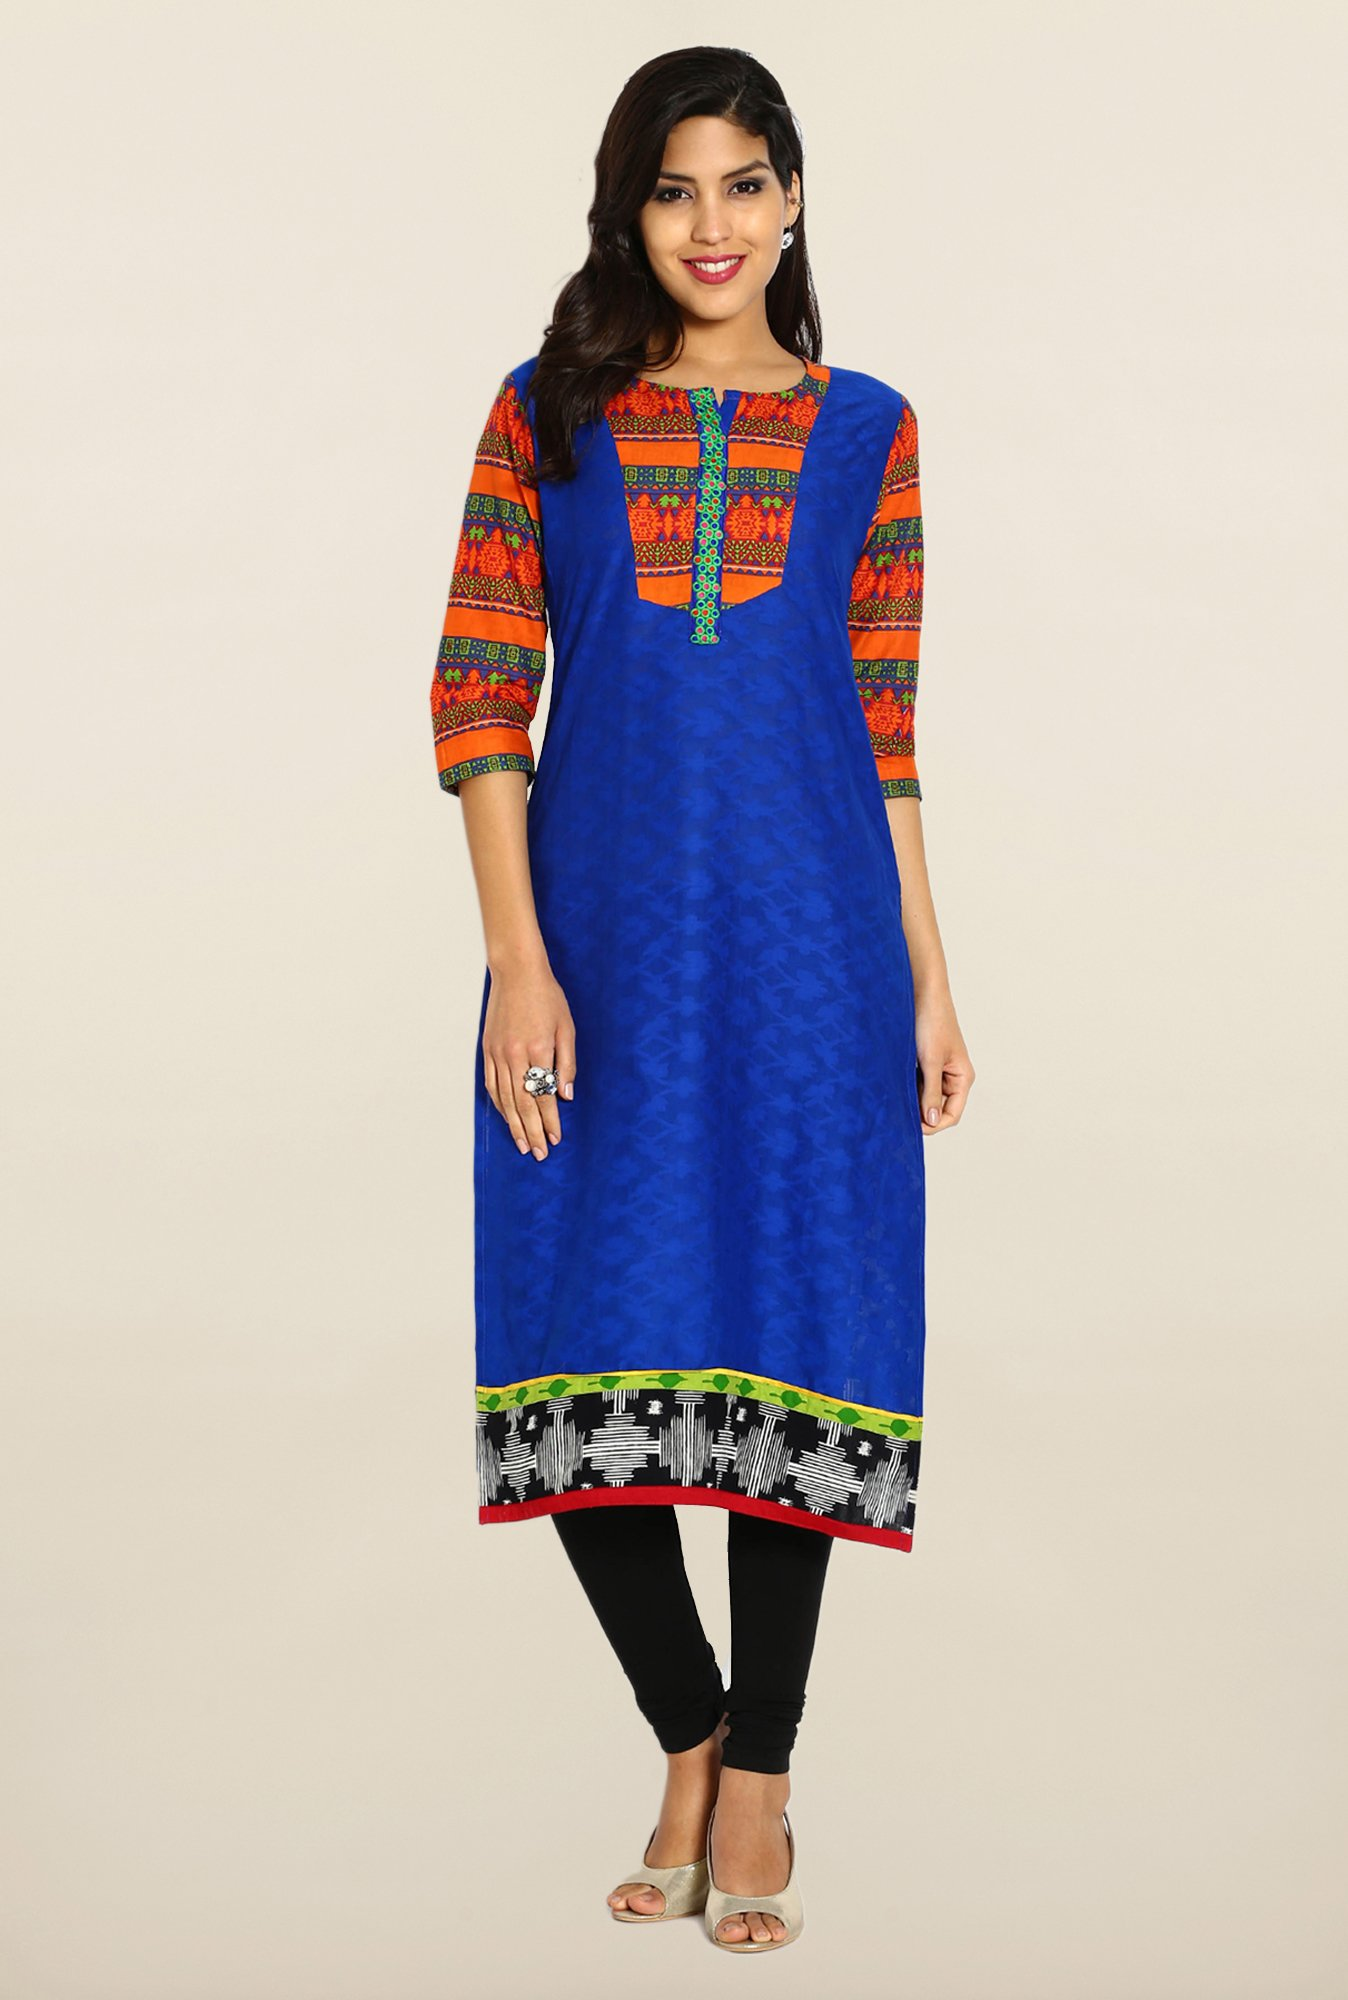 Soch Royal Blue & Orange Cotton Kurta